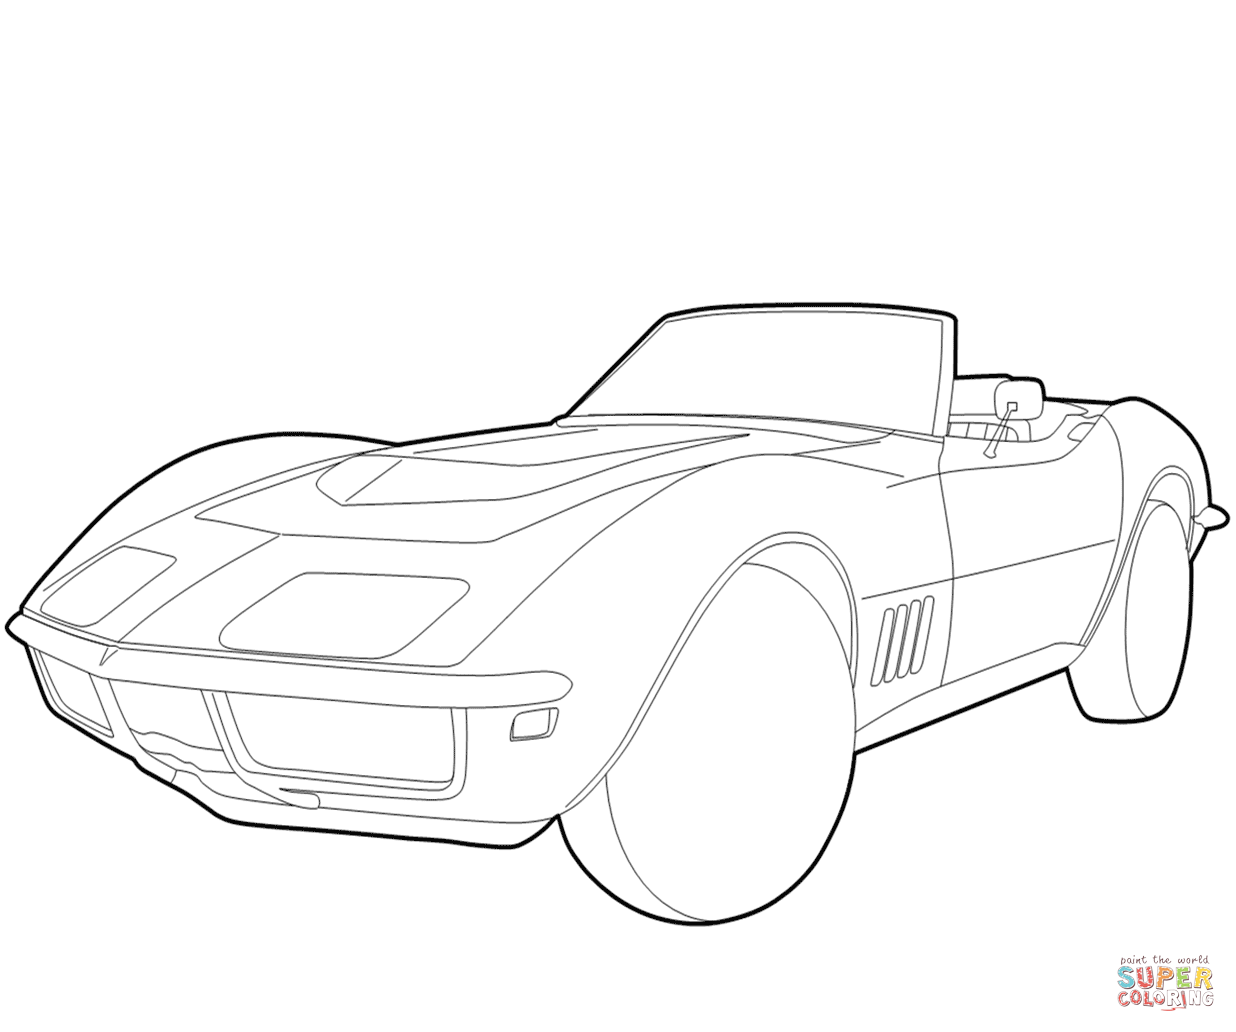 Camaro Outline Drawing At Getdrawings Com Free For Personal Use